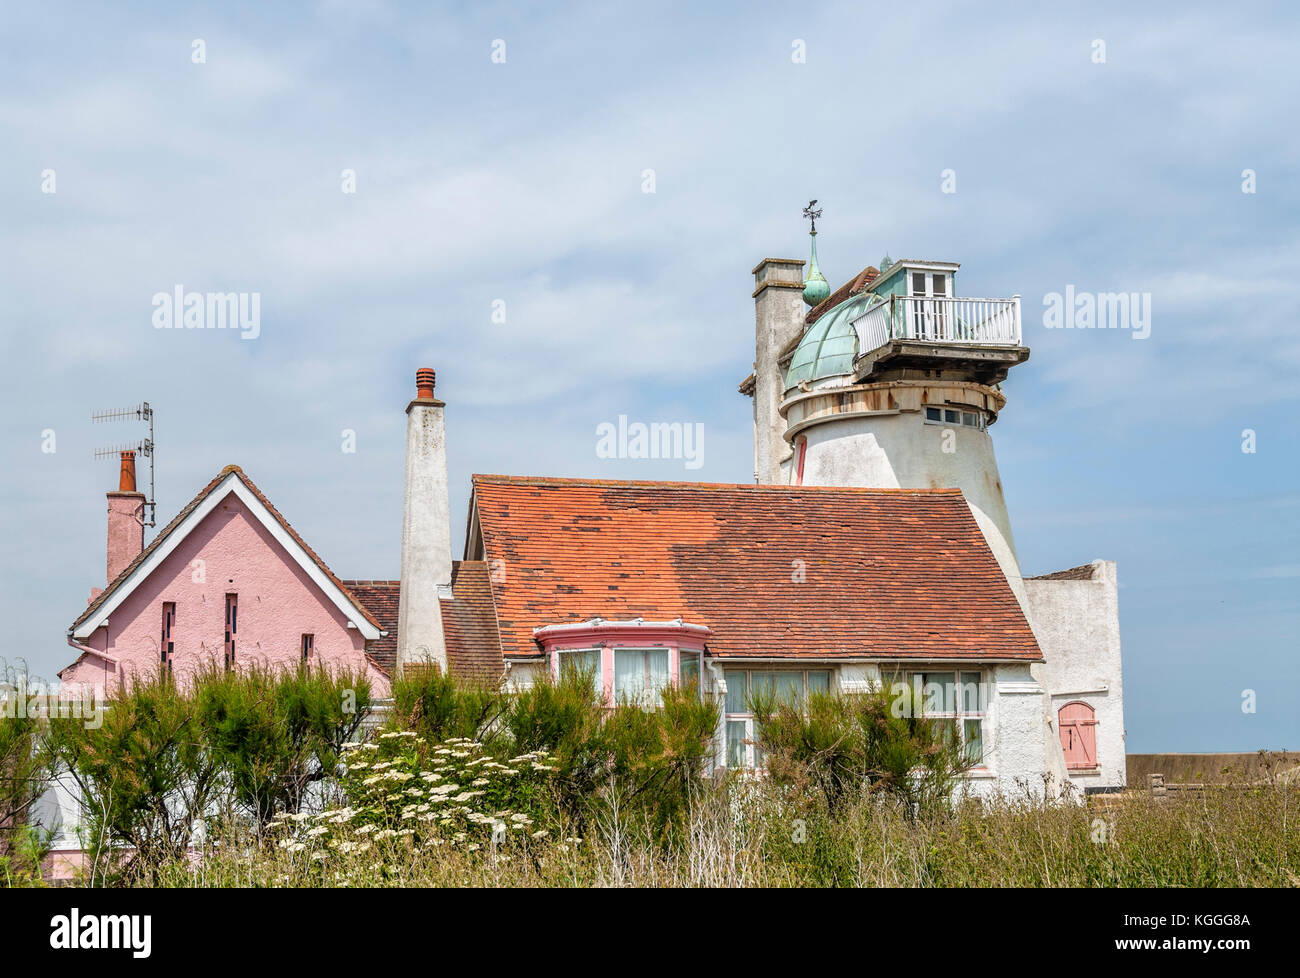 Converted Windmill in Aldeburgh a coastal town in Suffolk, East Anglia, England. Located on the Alde river the town - Stock Image